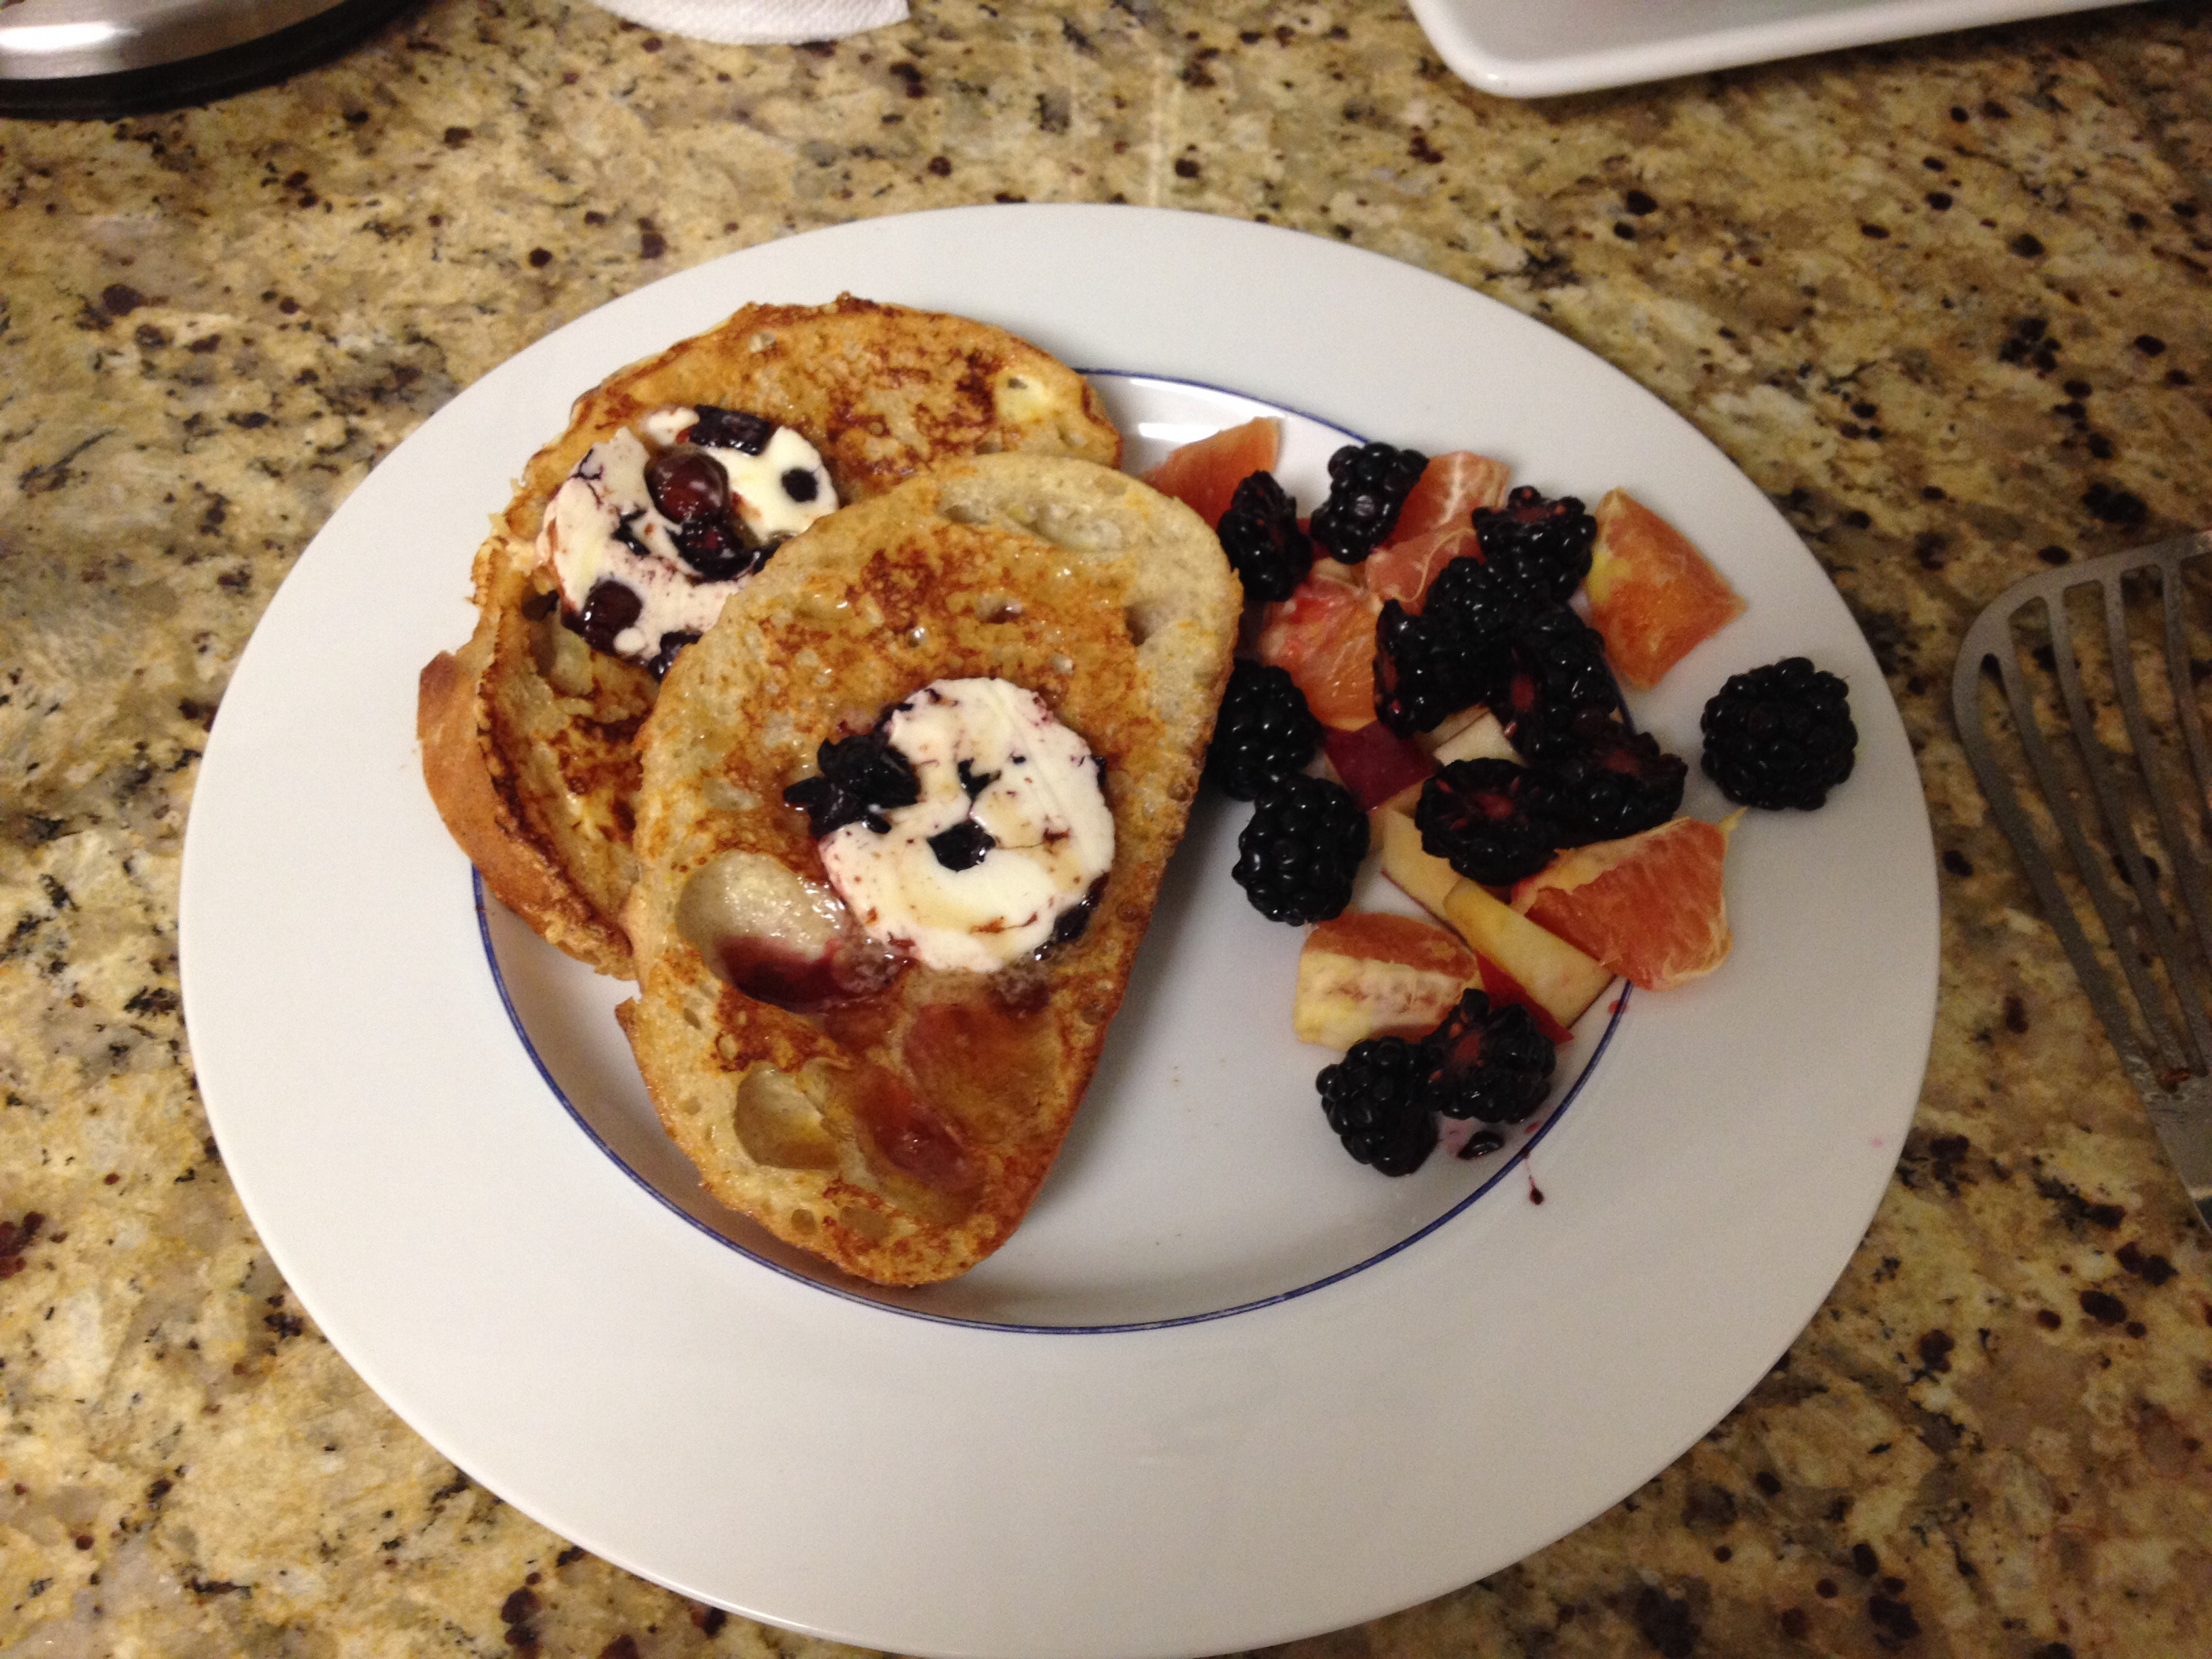 Grande Pioneer Berry Butter French Toast French Toast Monday Morning Meals Eggnog French Toast Alton Brown Alton Brown Eggnog French Toast nice food French Toast Alton Brown